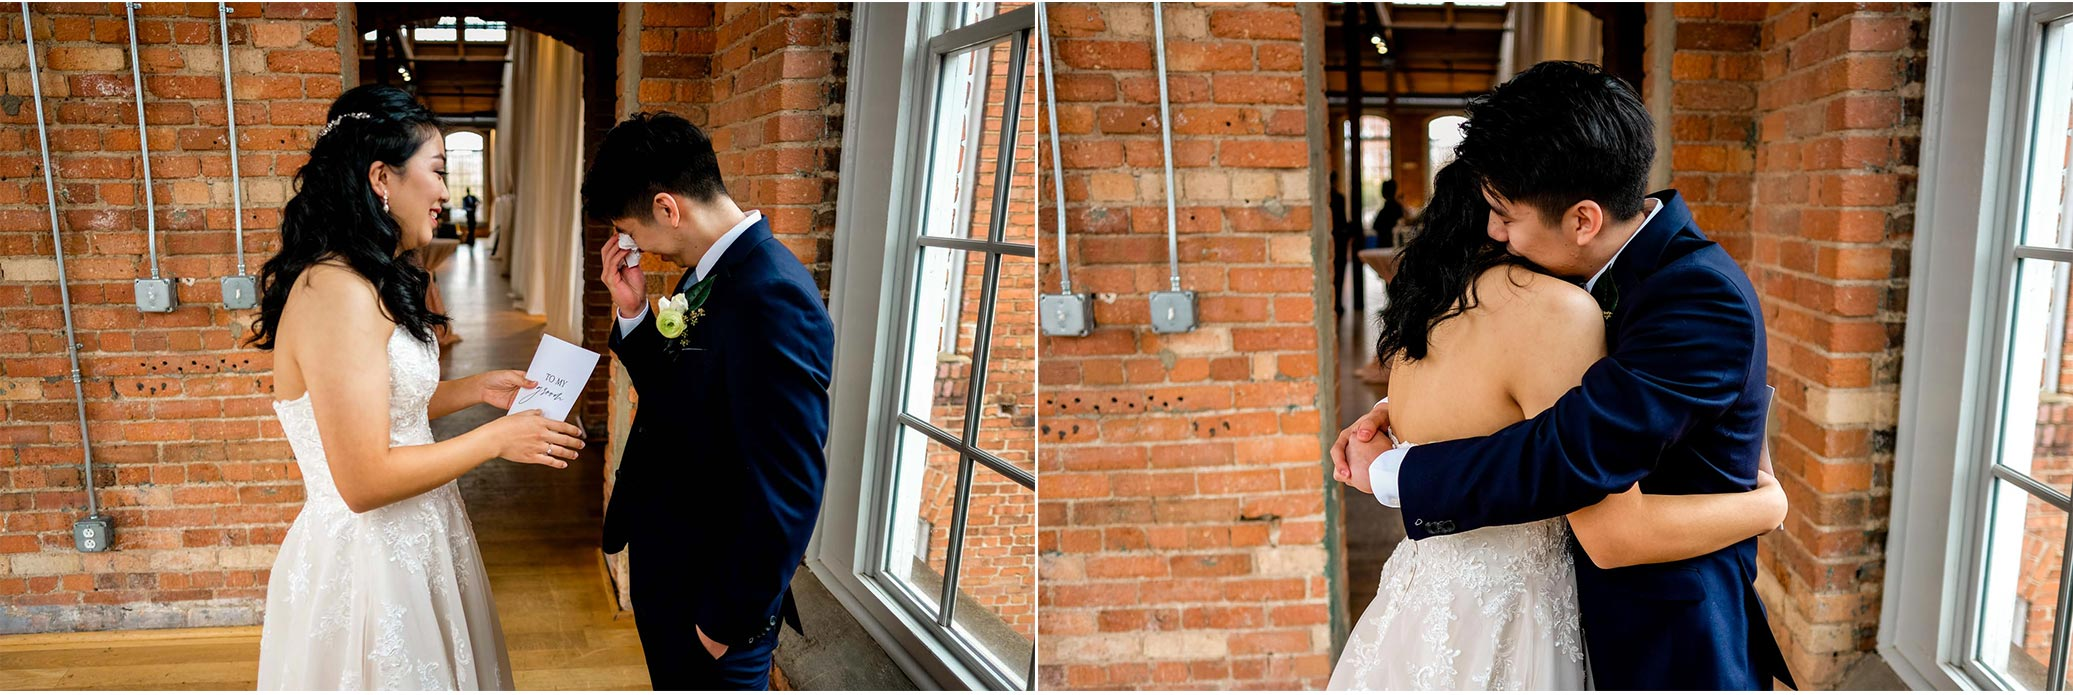 First looks at The Cotton Room | Durham Wedding Photography | By G. Lin Photography